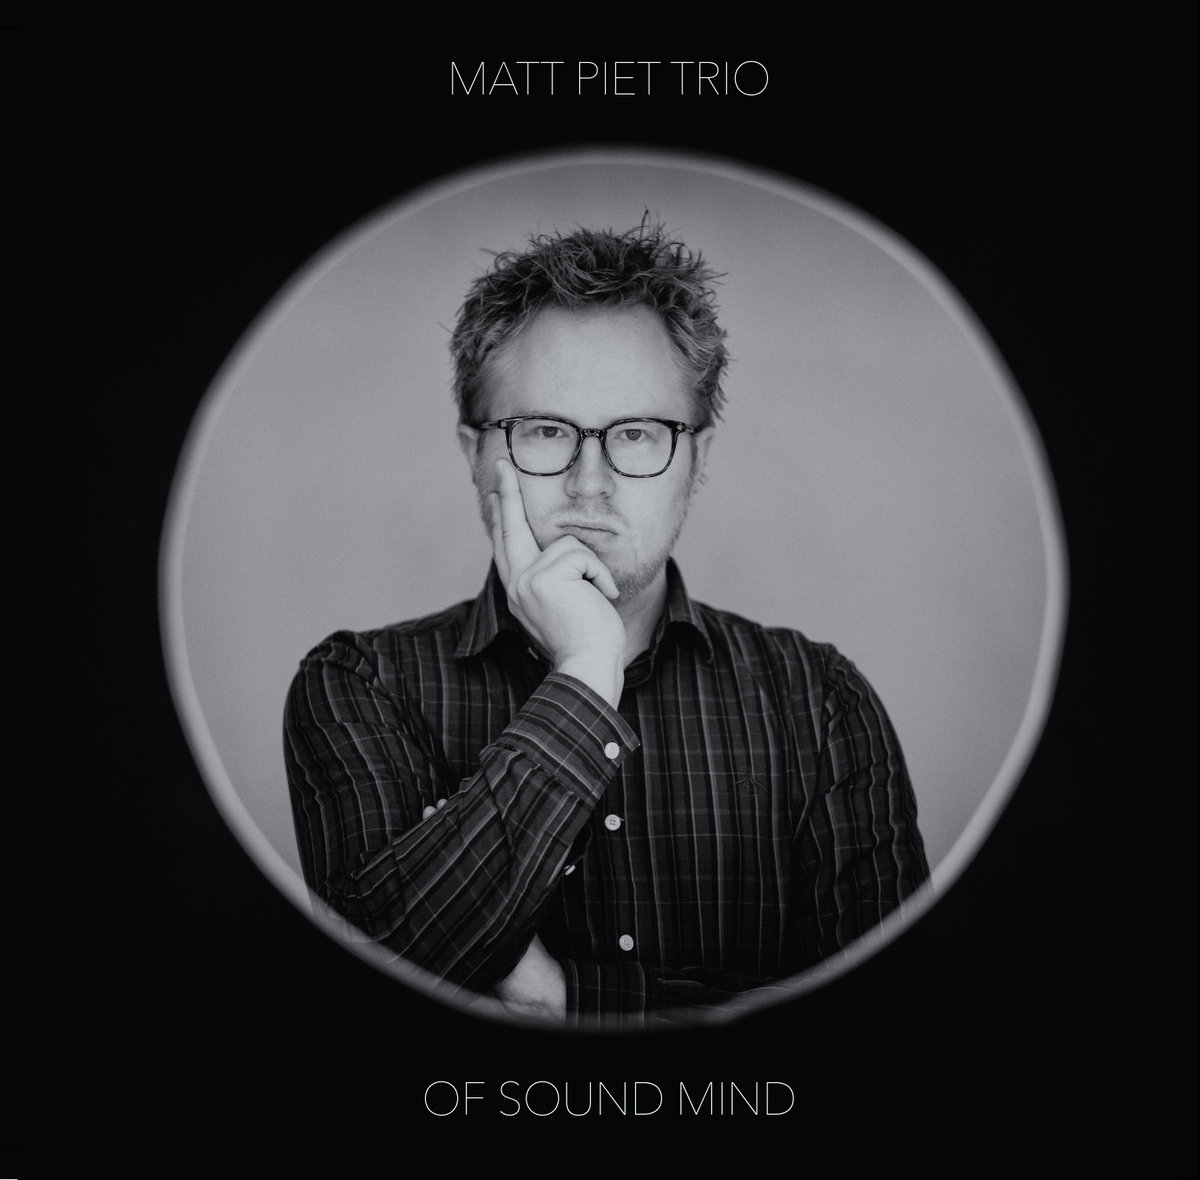 Of Sound Mind  by Matt Piet Trio